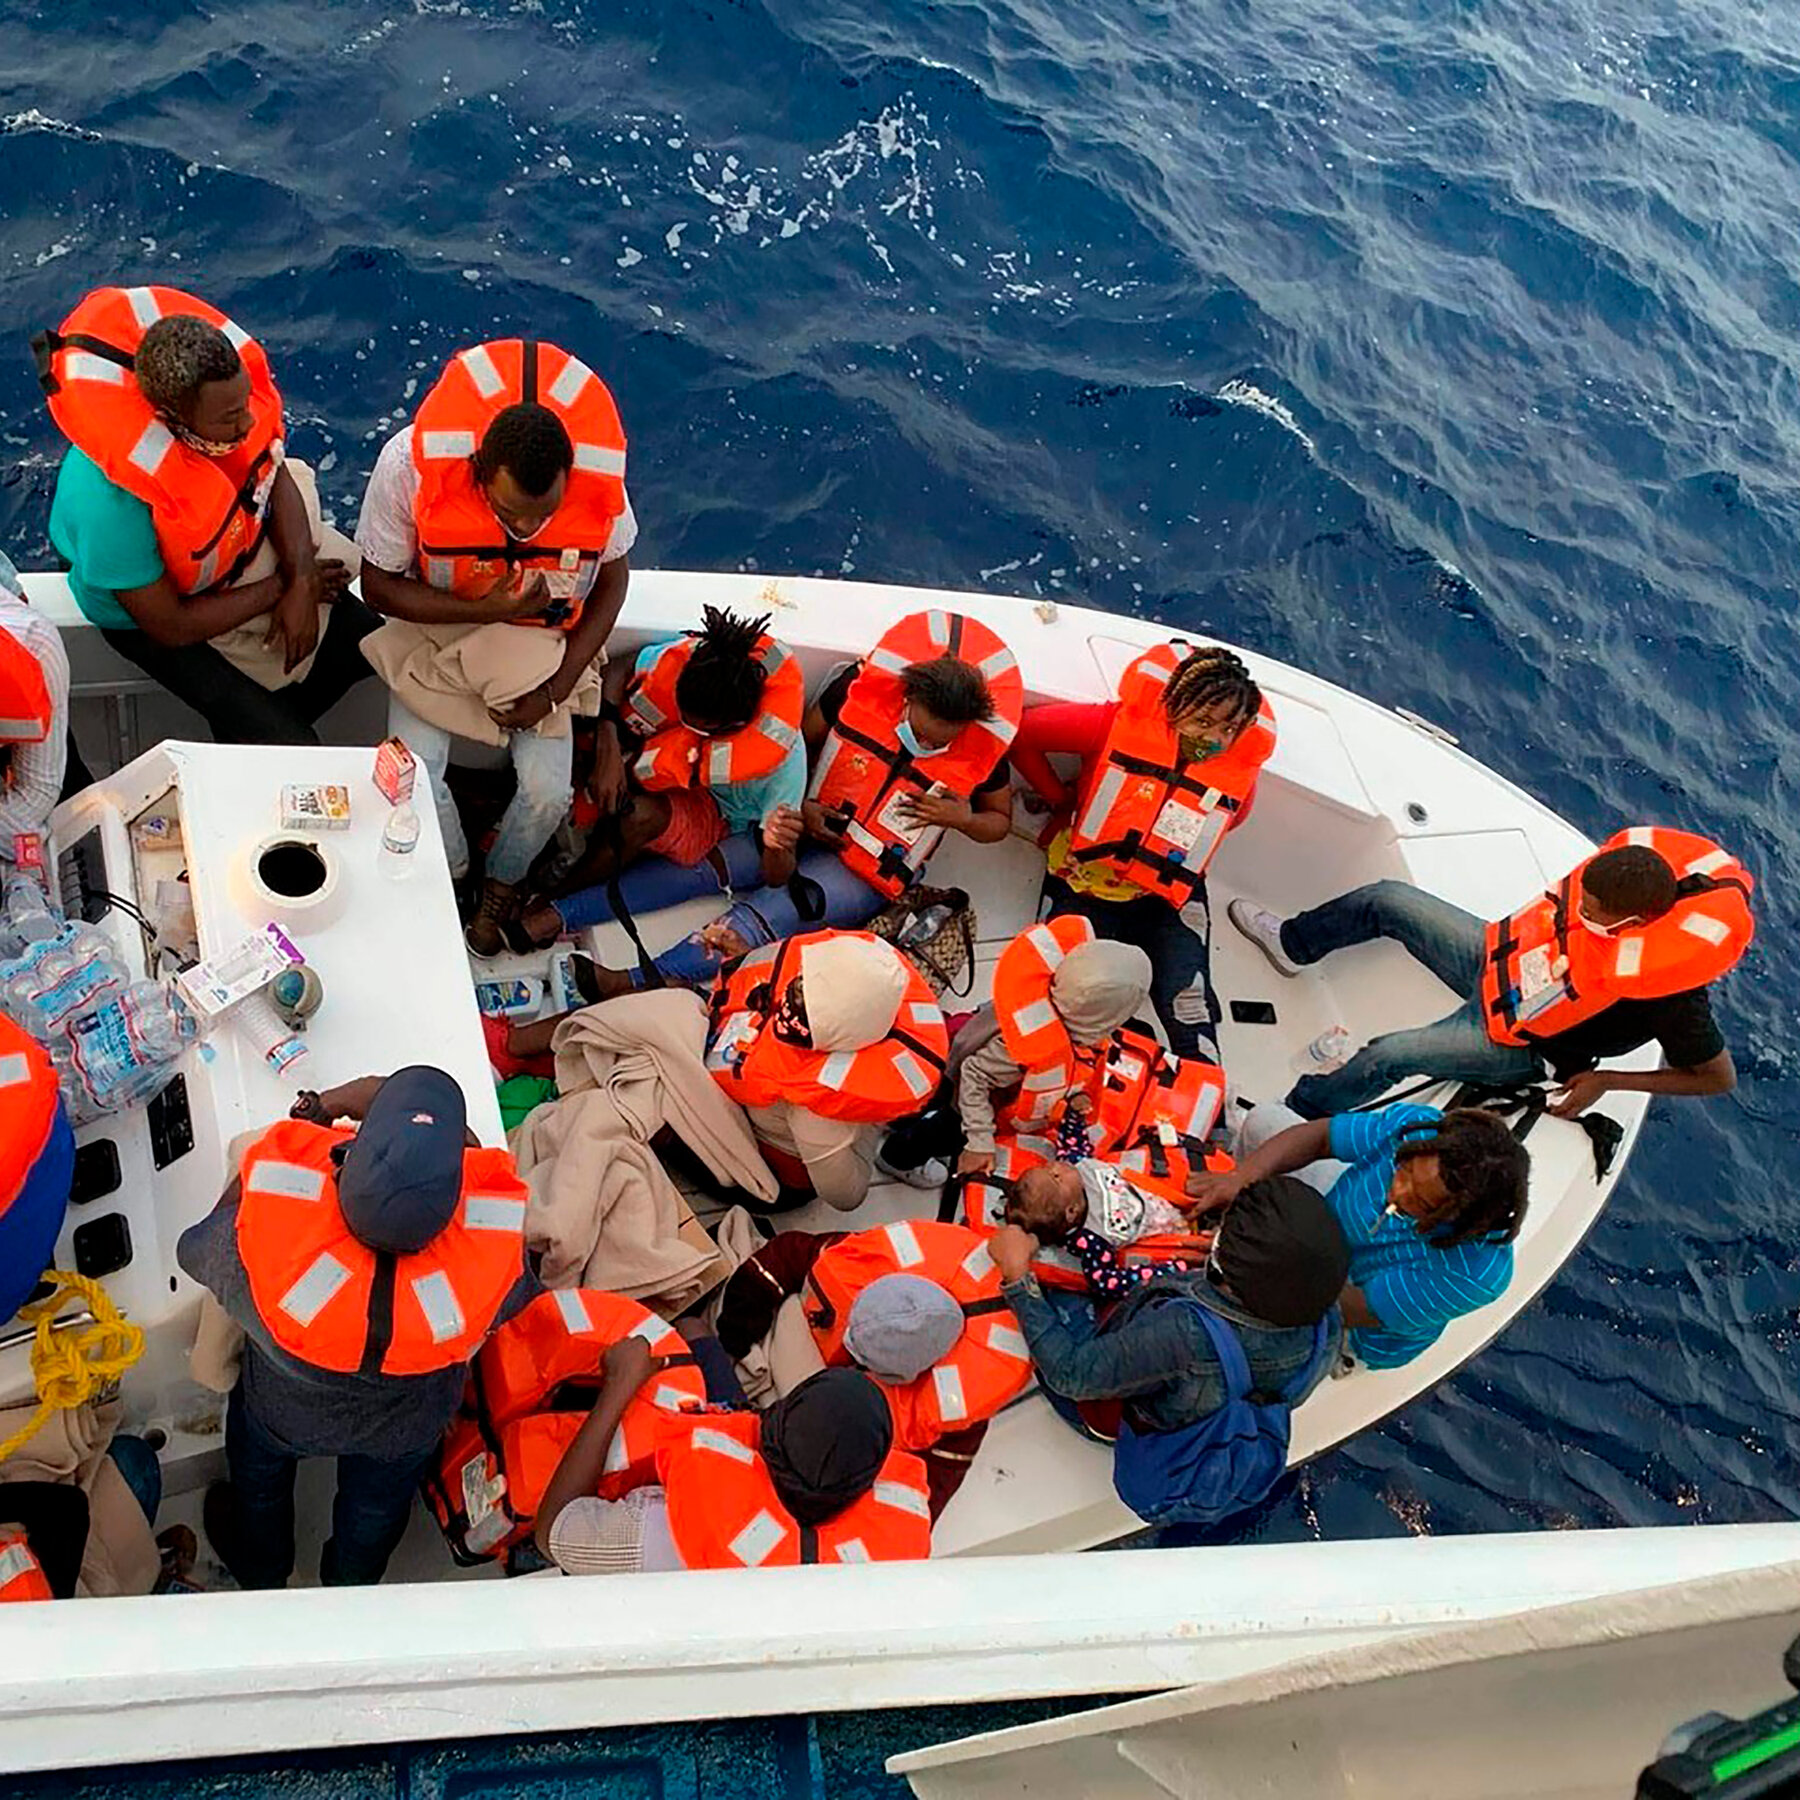 cruise ship rescues 24 people from